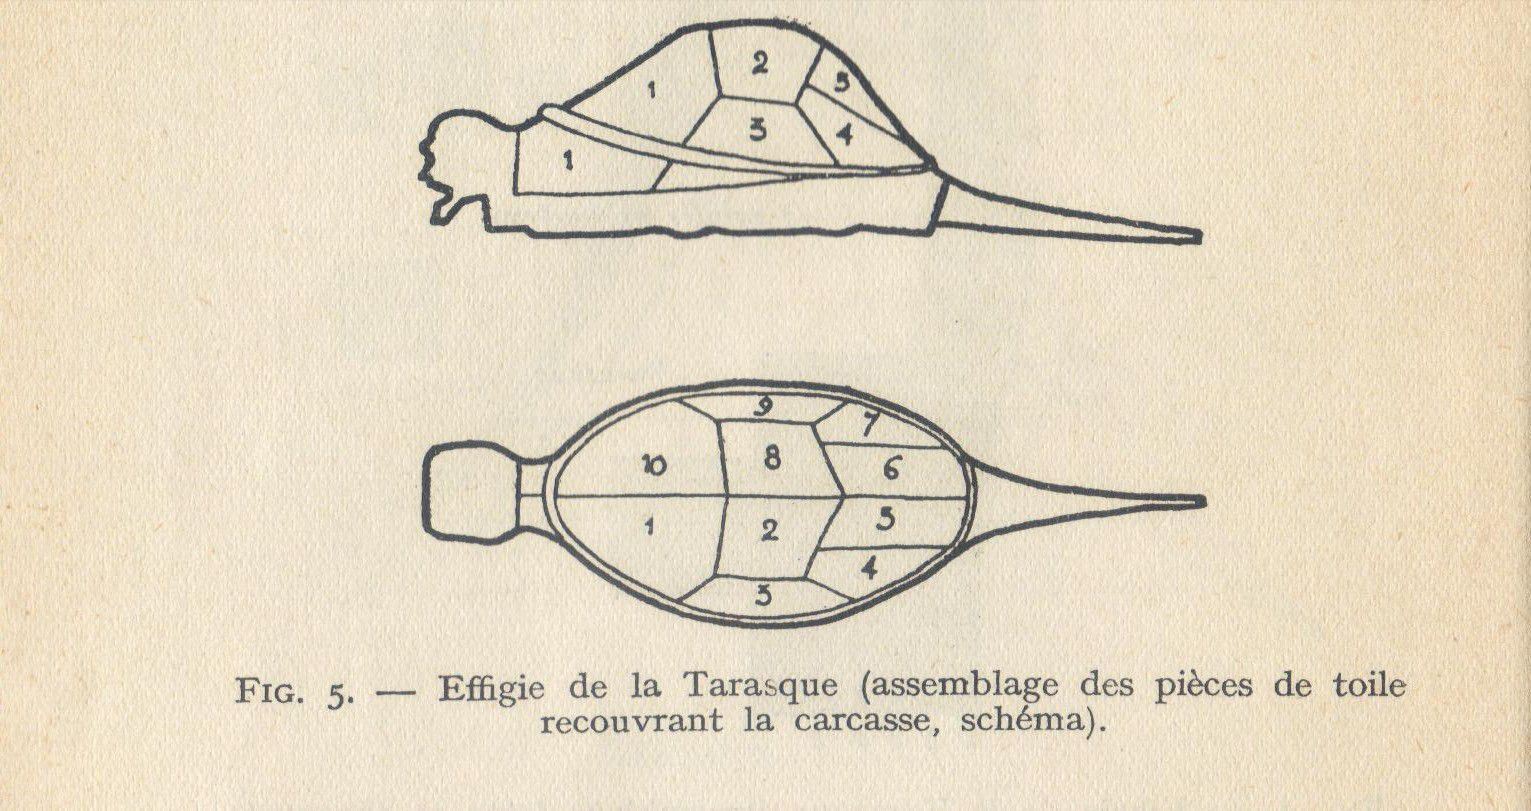 TARASQUE-8-001-copie-1.jpg